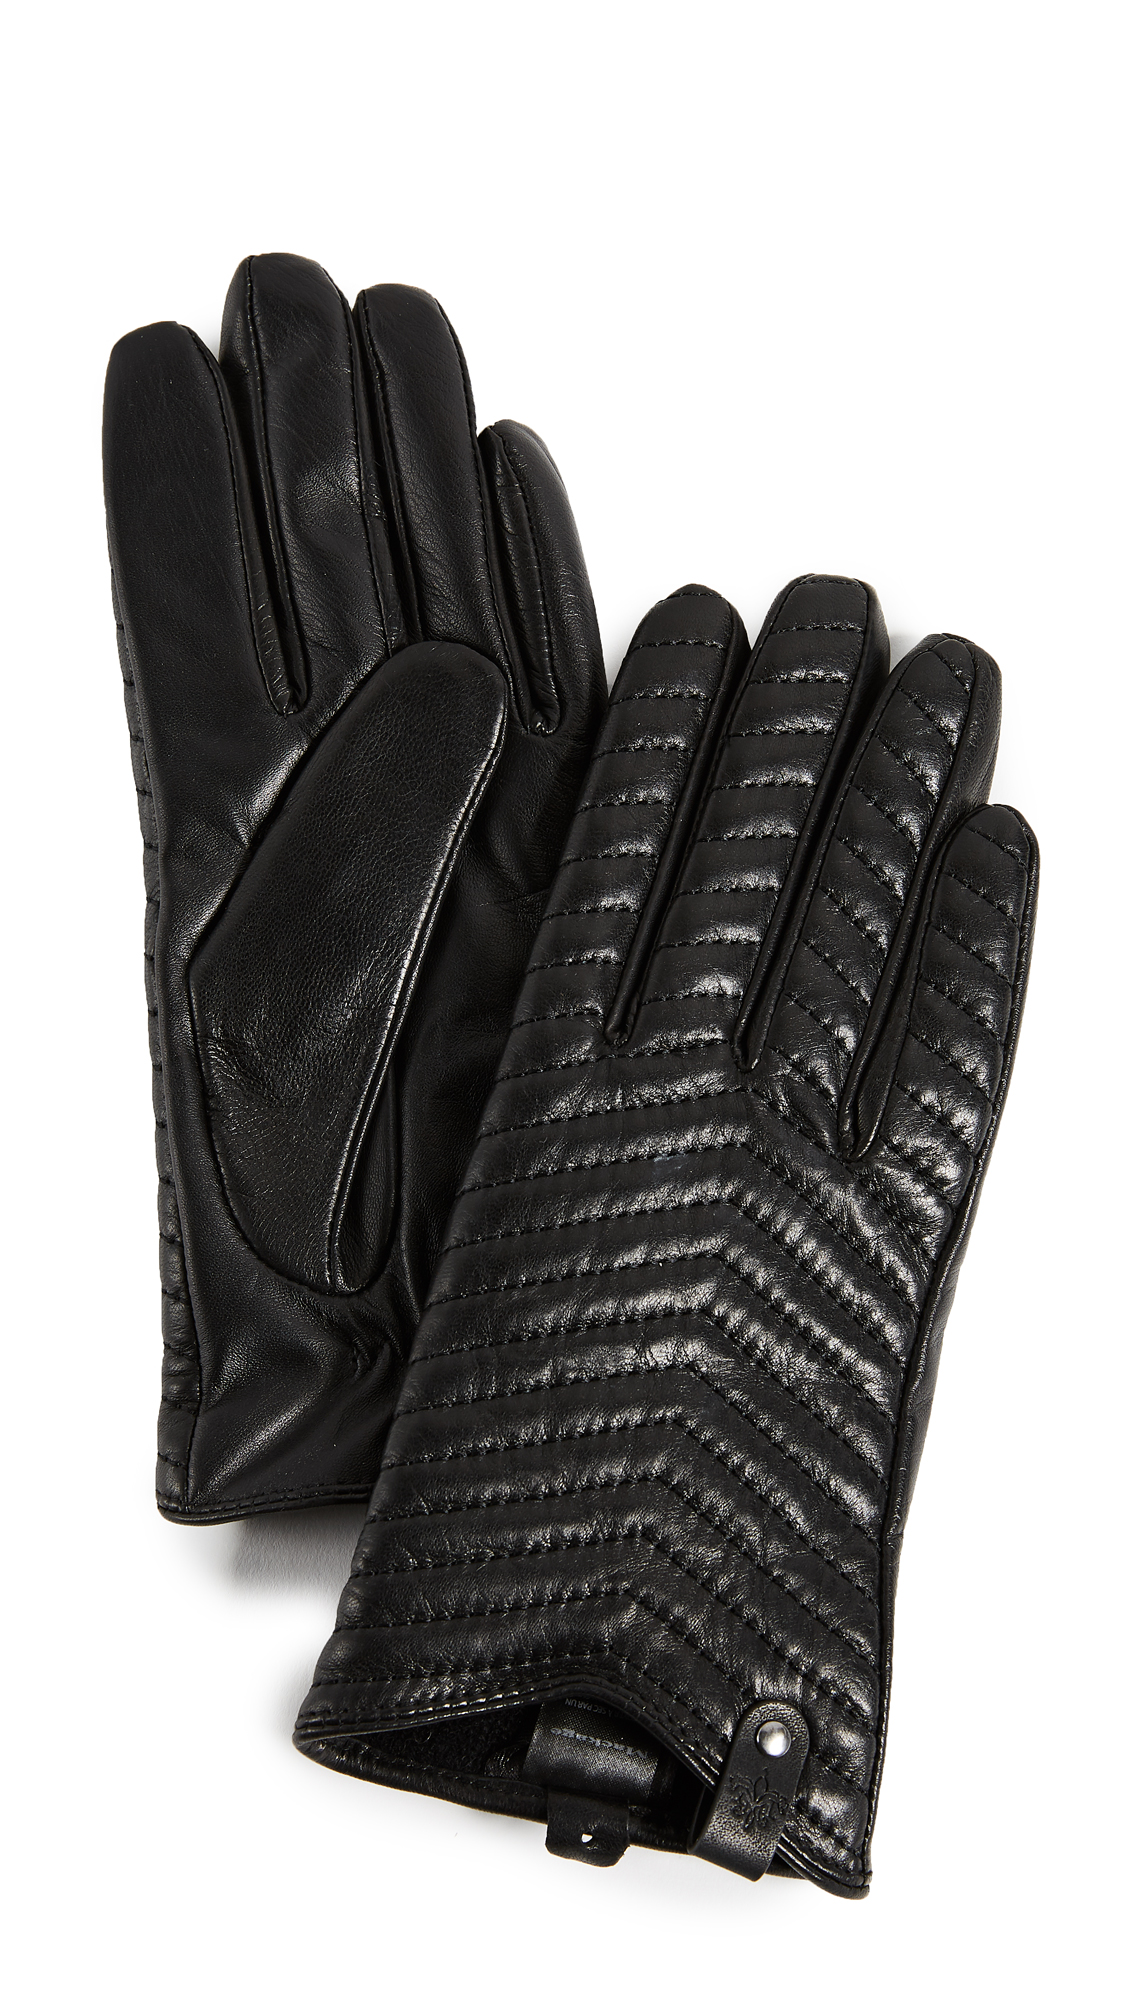 Mackage Cano Leather Tech Gloves - Black